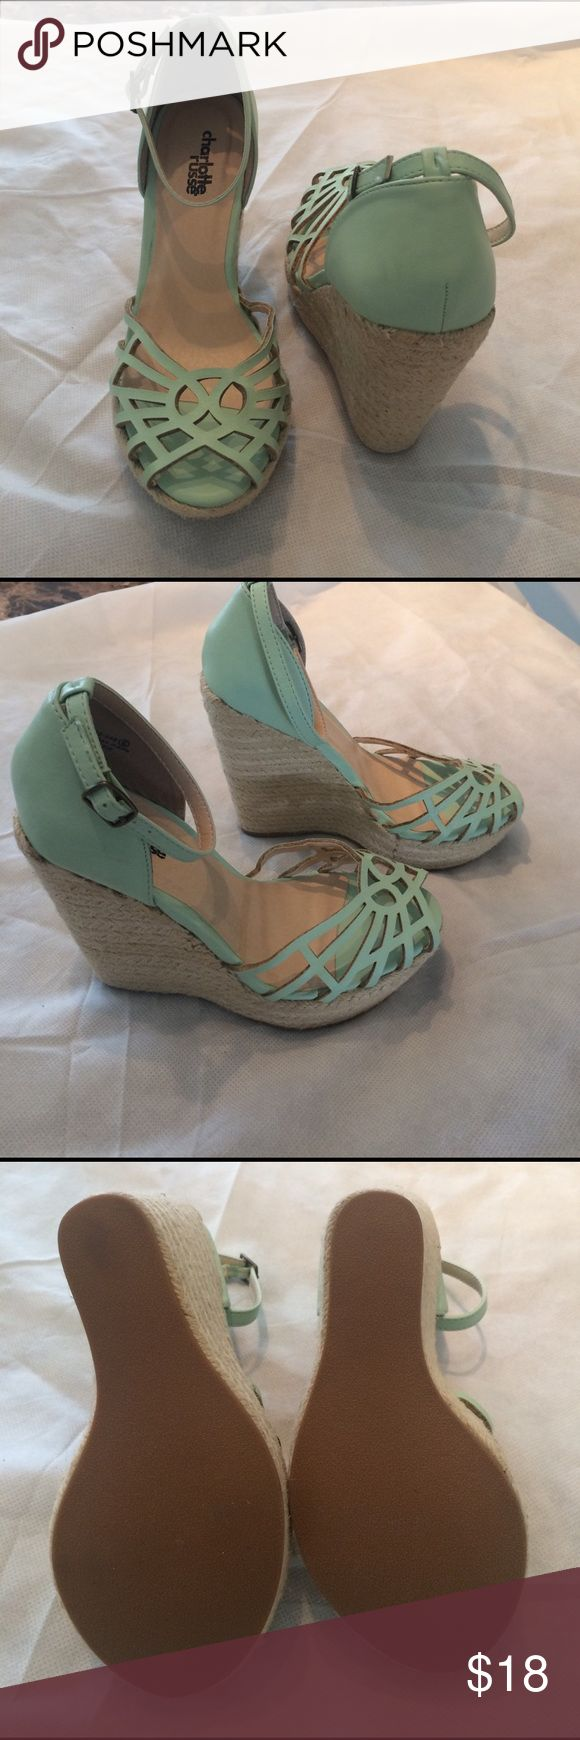 Firm! Charlotte Ruse Mint Peep Toe Wedges Charlotte Russe. Good, used condition. Signs of wear as shown in the photos Charlotte Russe Shoes Wedges